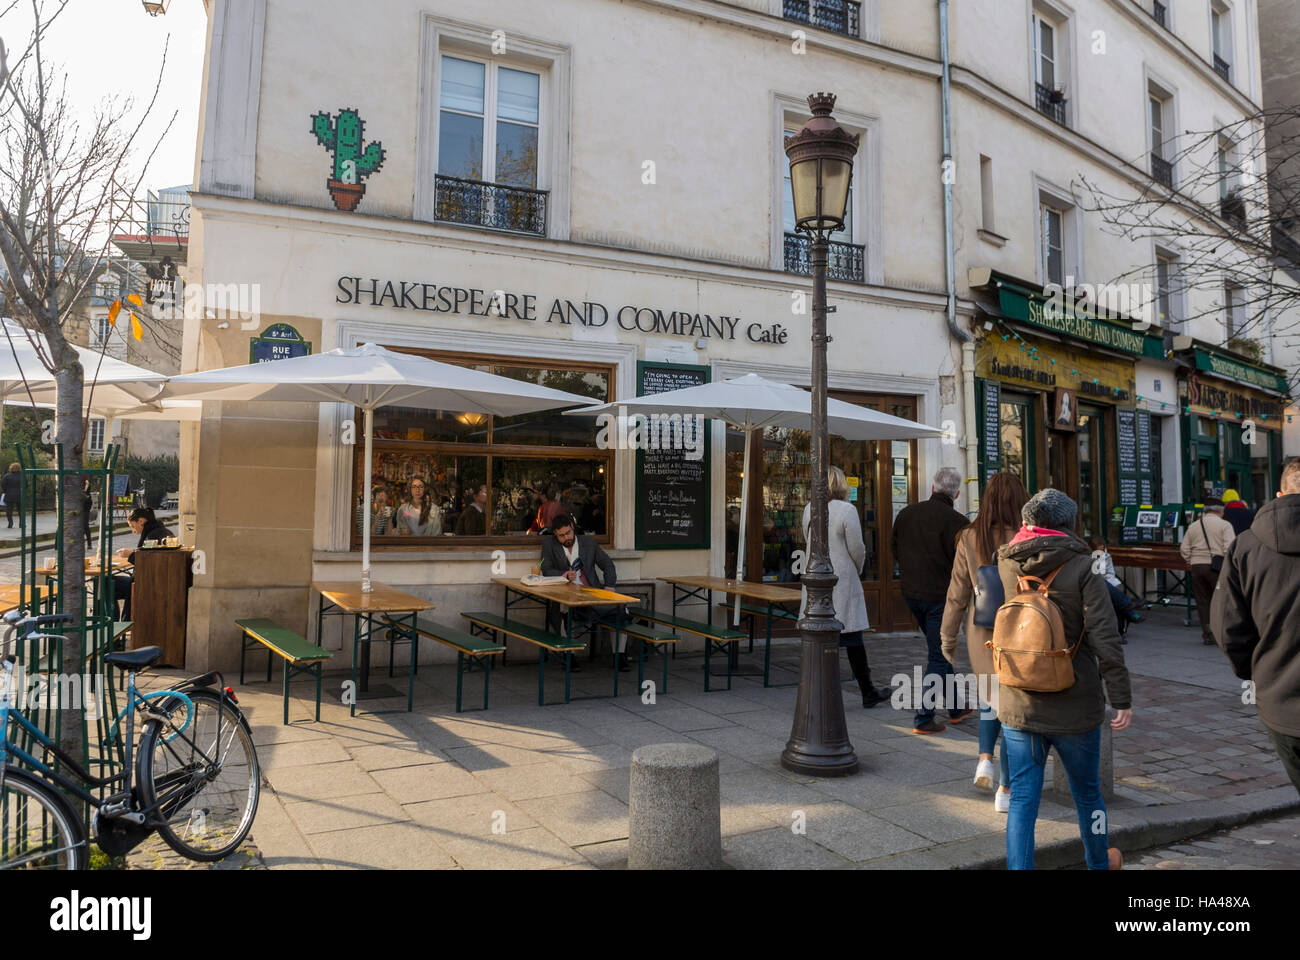 Paris, France, People Shopping, 'Shakespeare and Company' Bookstore, Shop Front Window, with Sign, in Latin - Stock Image